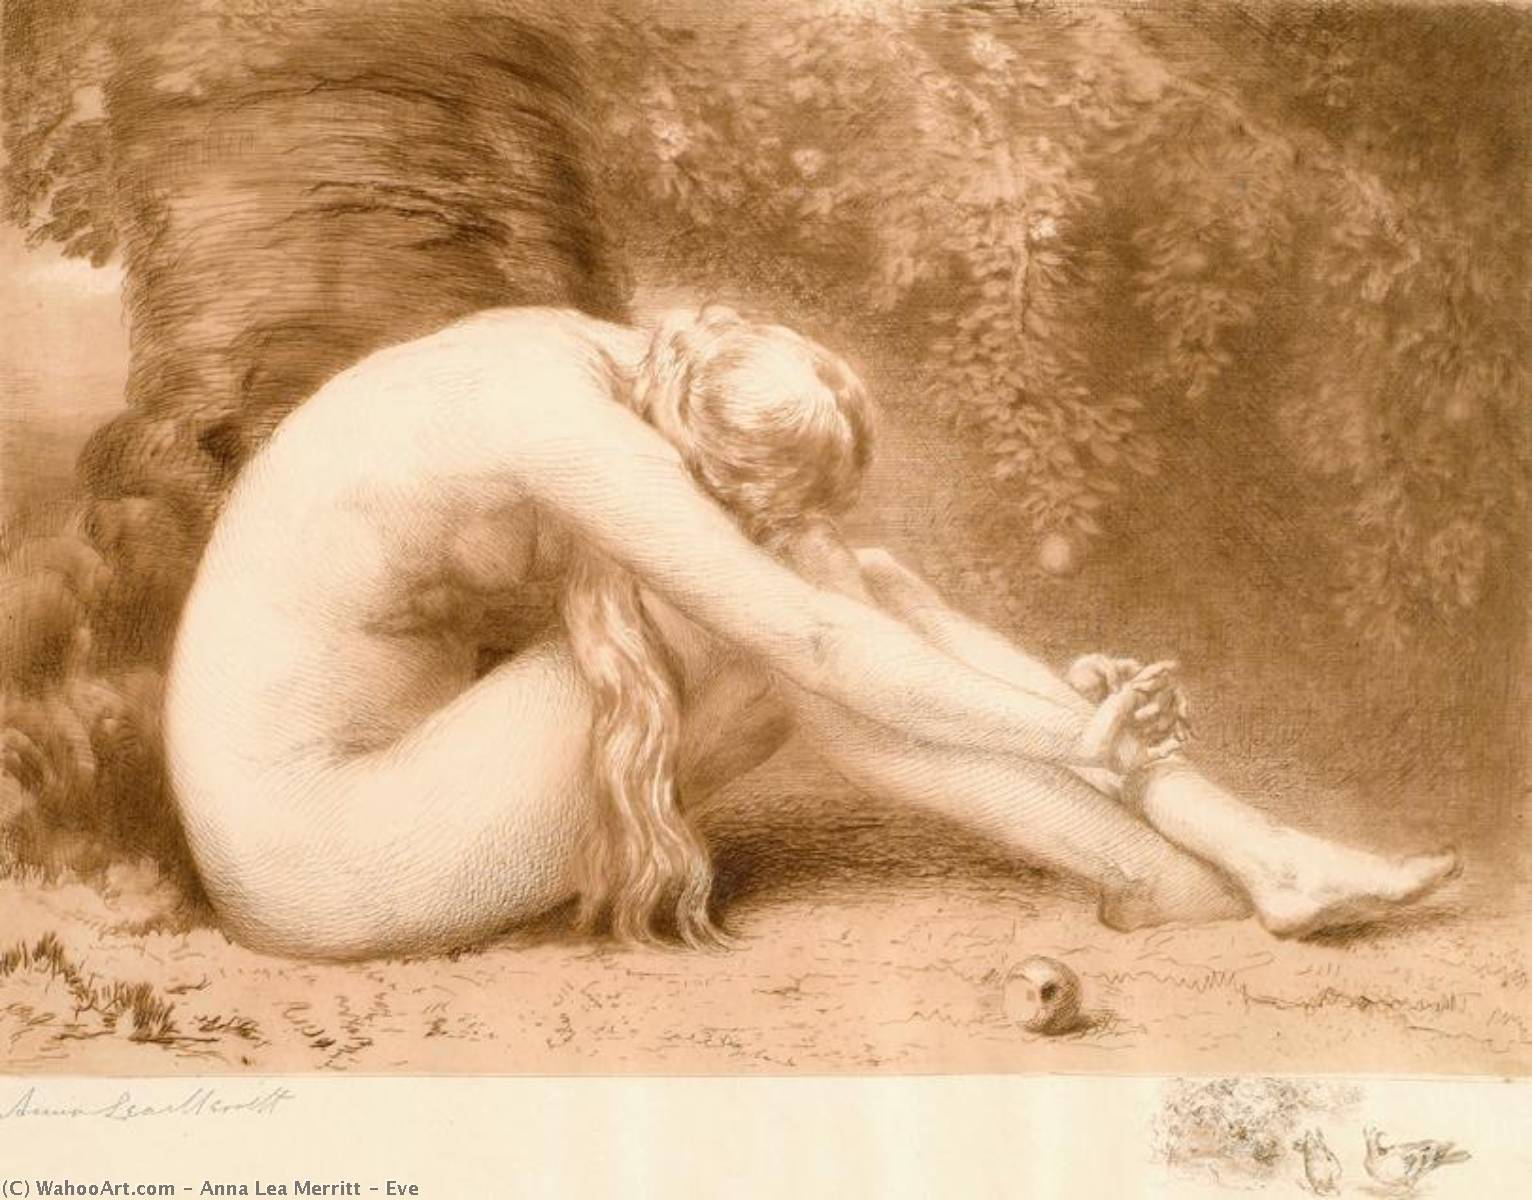 Order Art Reproduction : Eve, 1887 by Anna Lea Merritt (1844-1930, United States) | ArtsDot.com